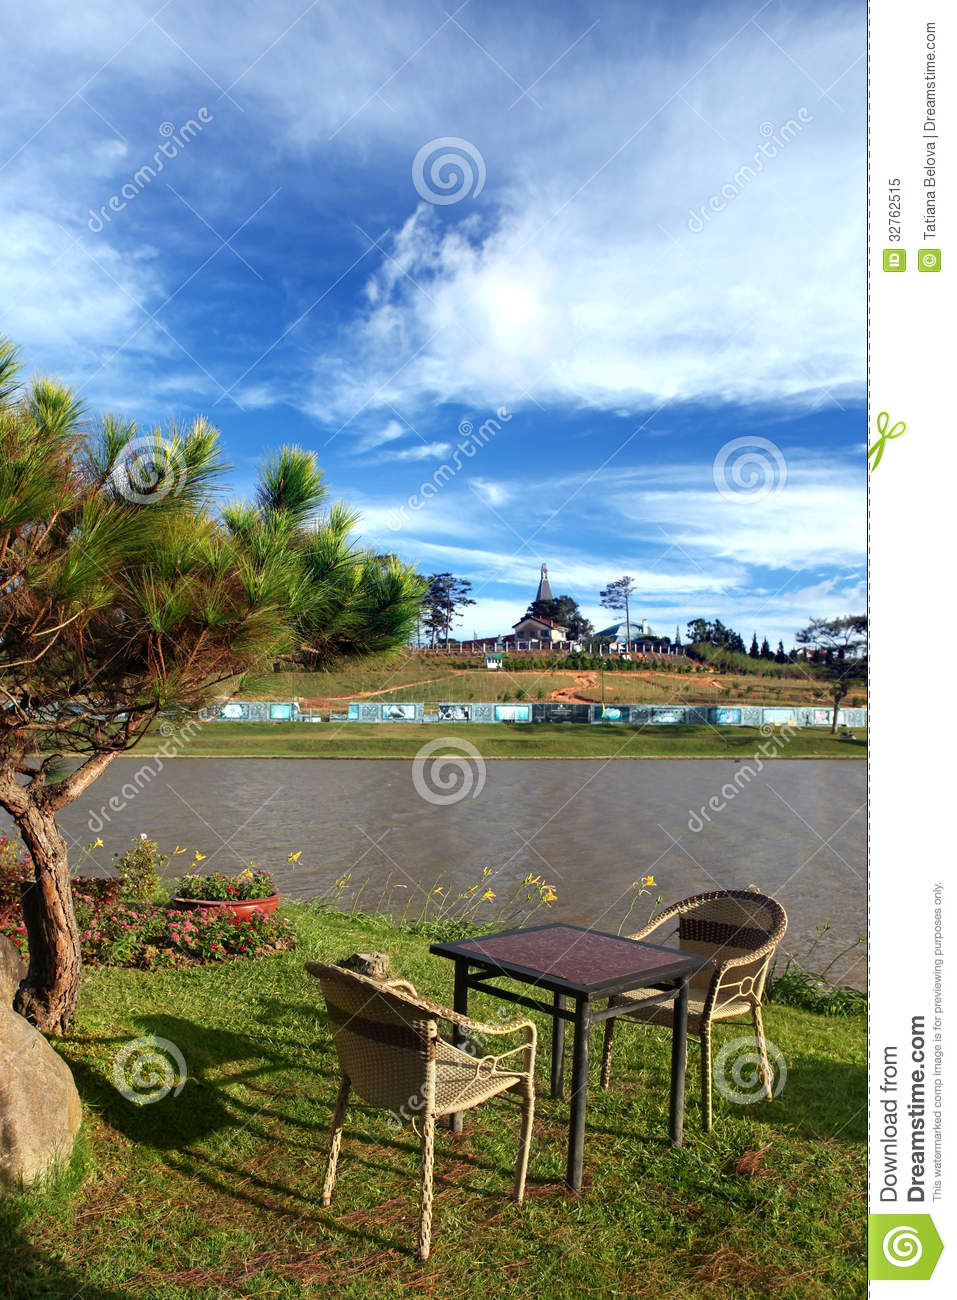 Patio Table And Chairs In City Park Royalty Free Stock